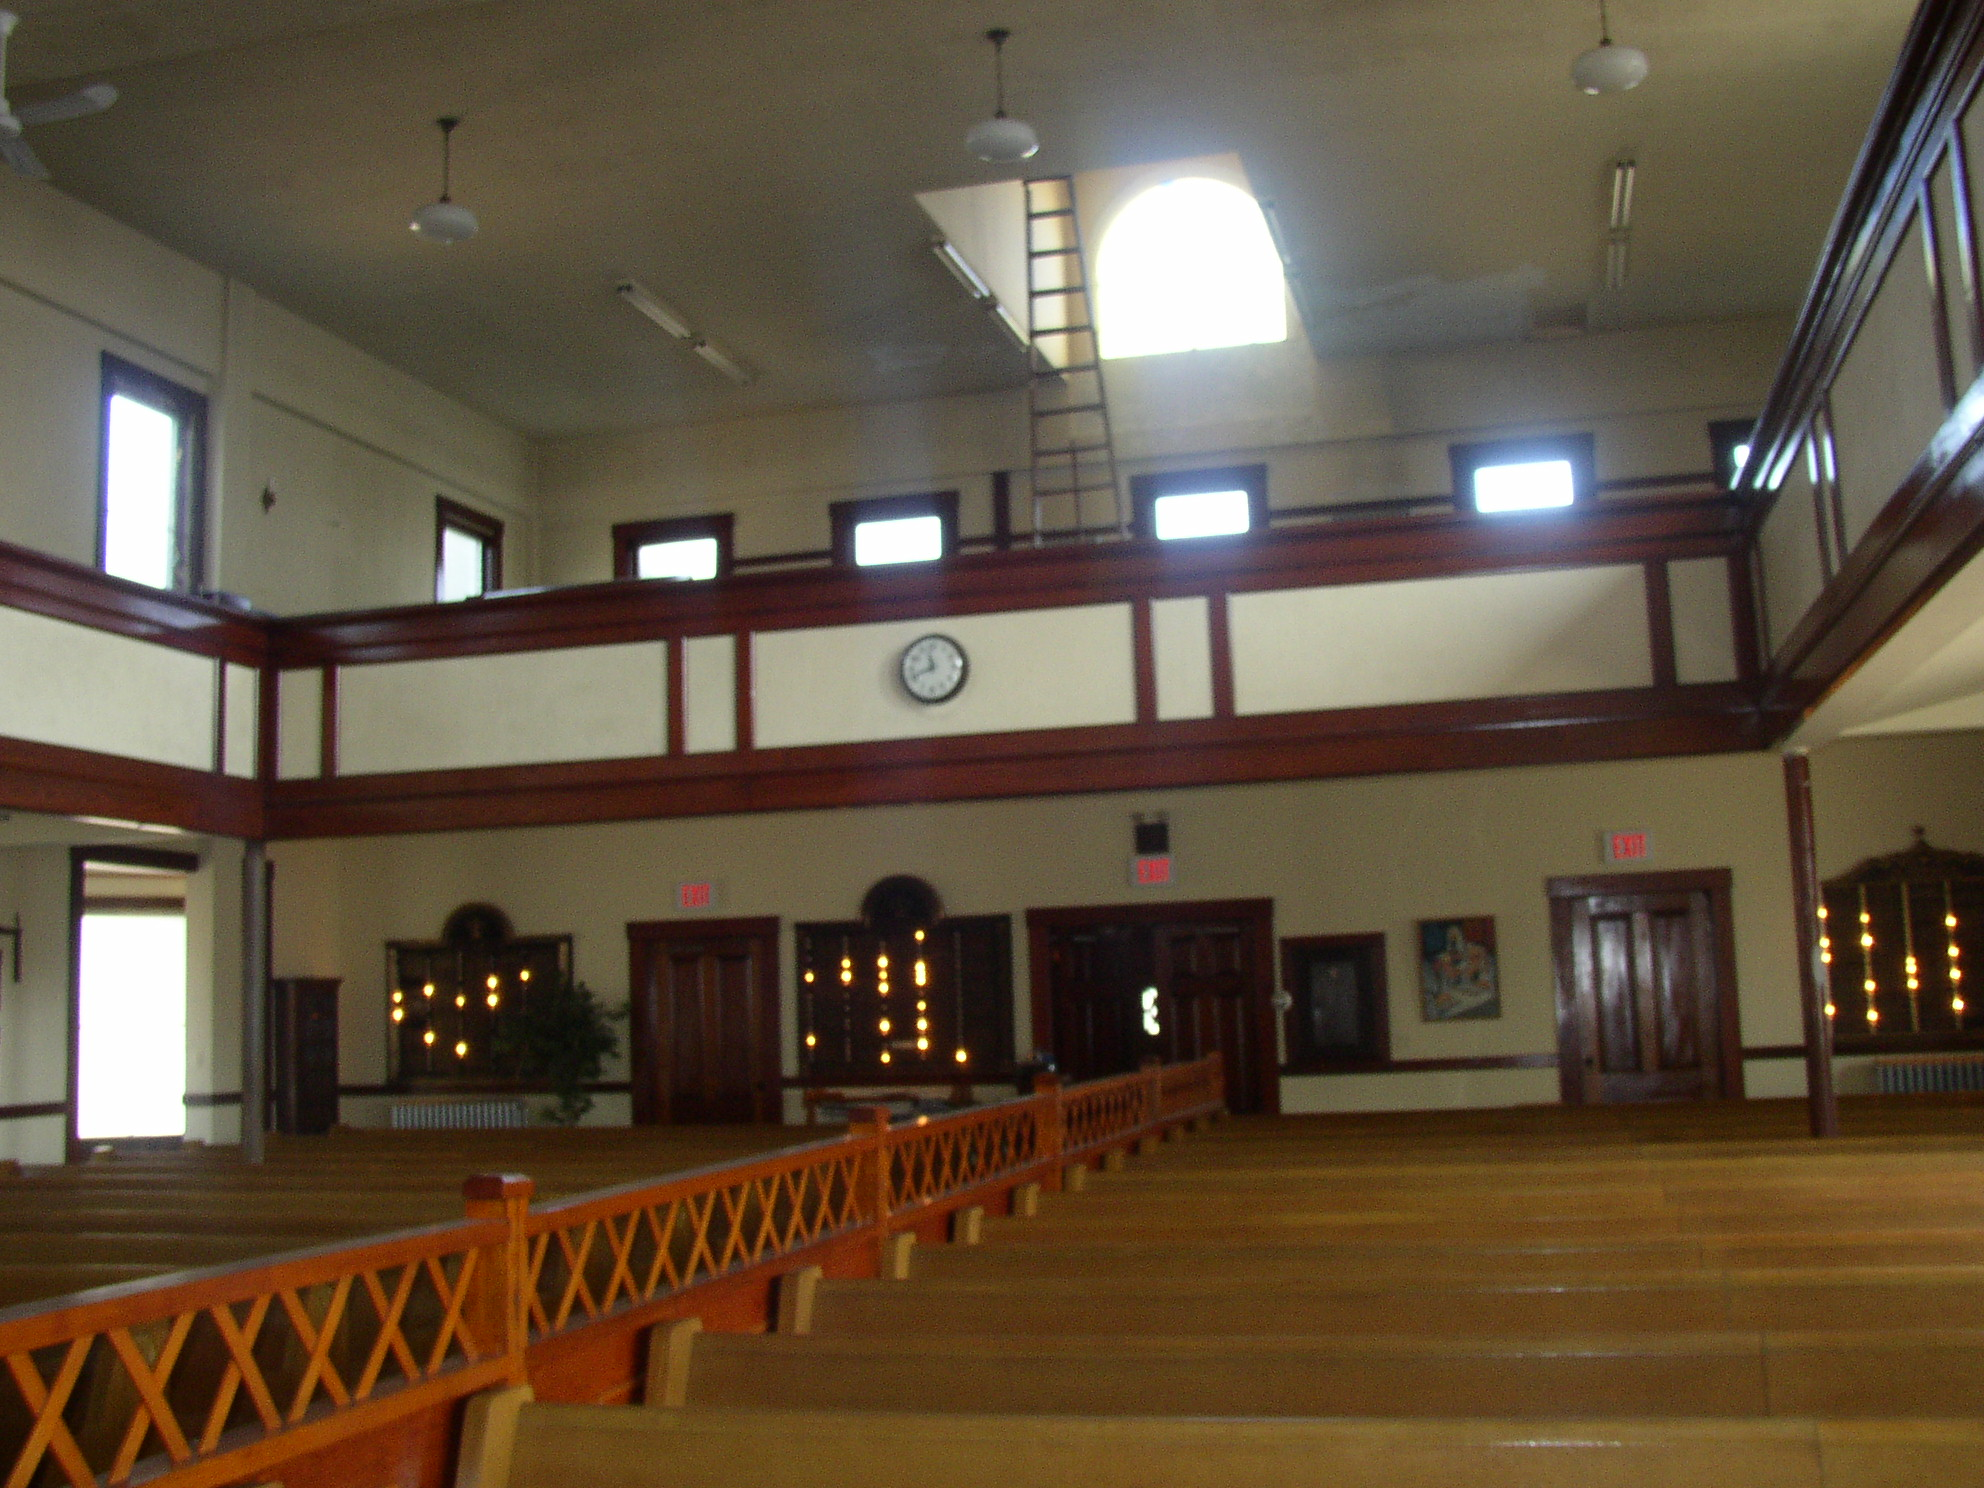 View of the interior of the synagogue showing the center railing which separates the men from the women for worship, as is Orthodox custom